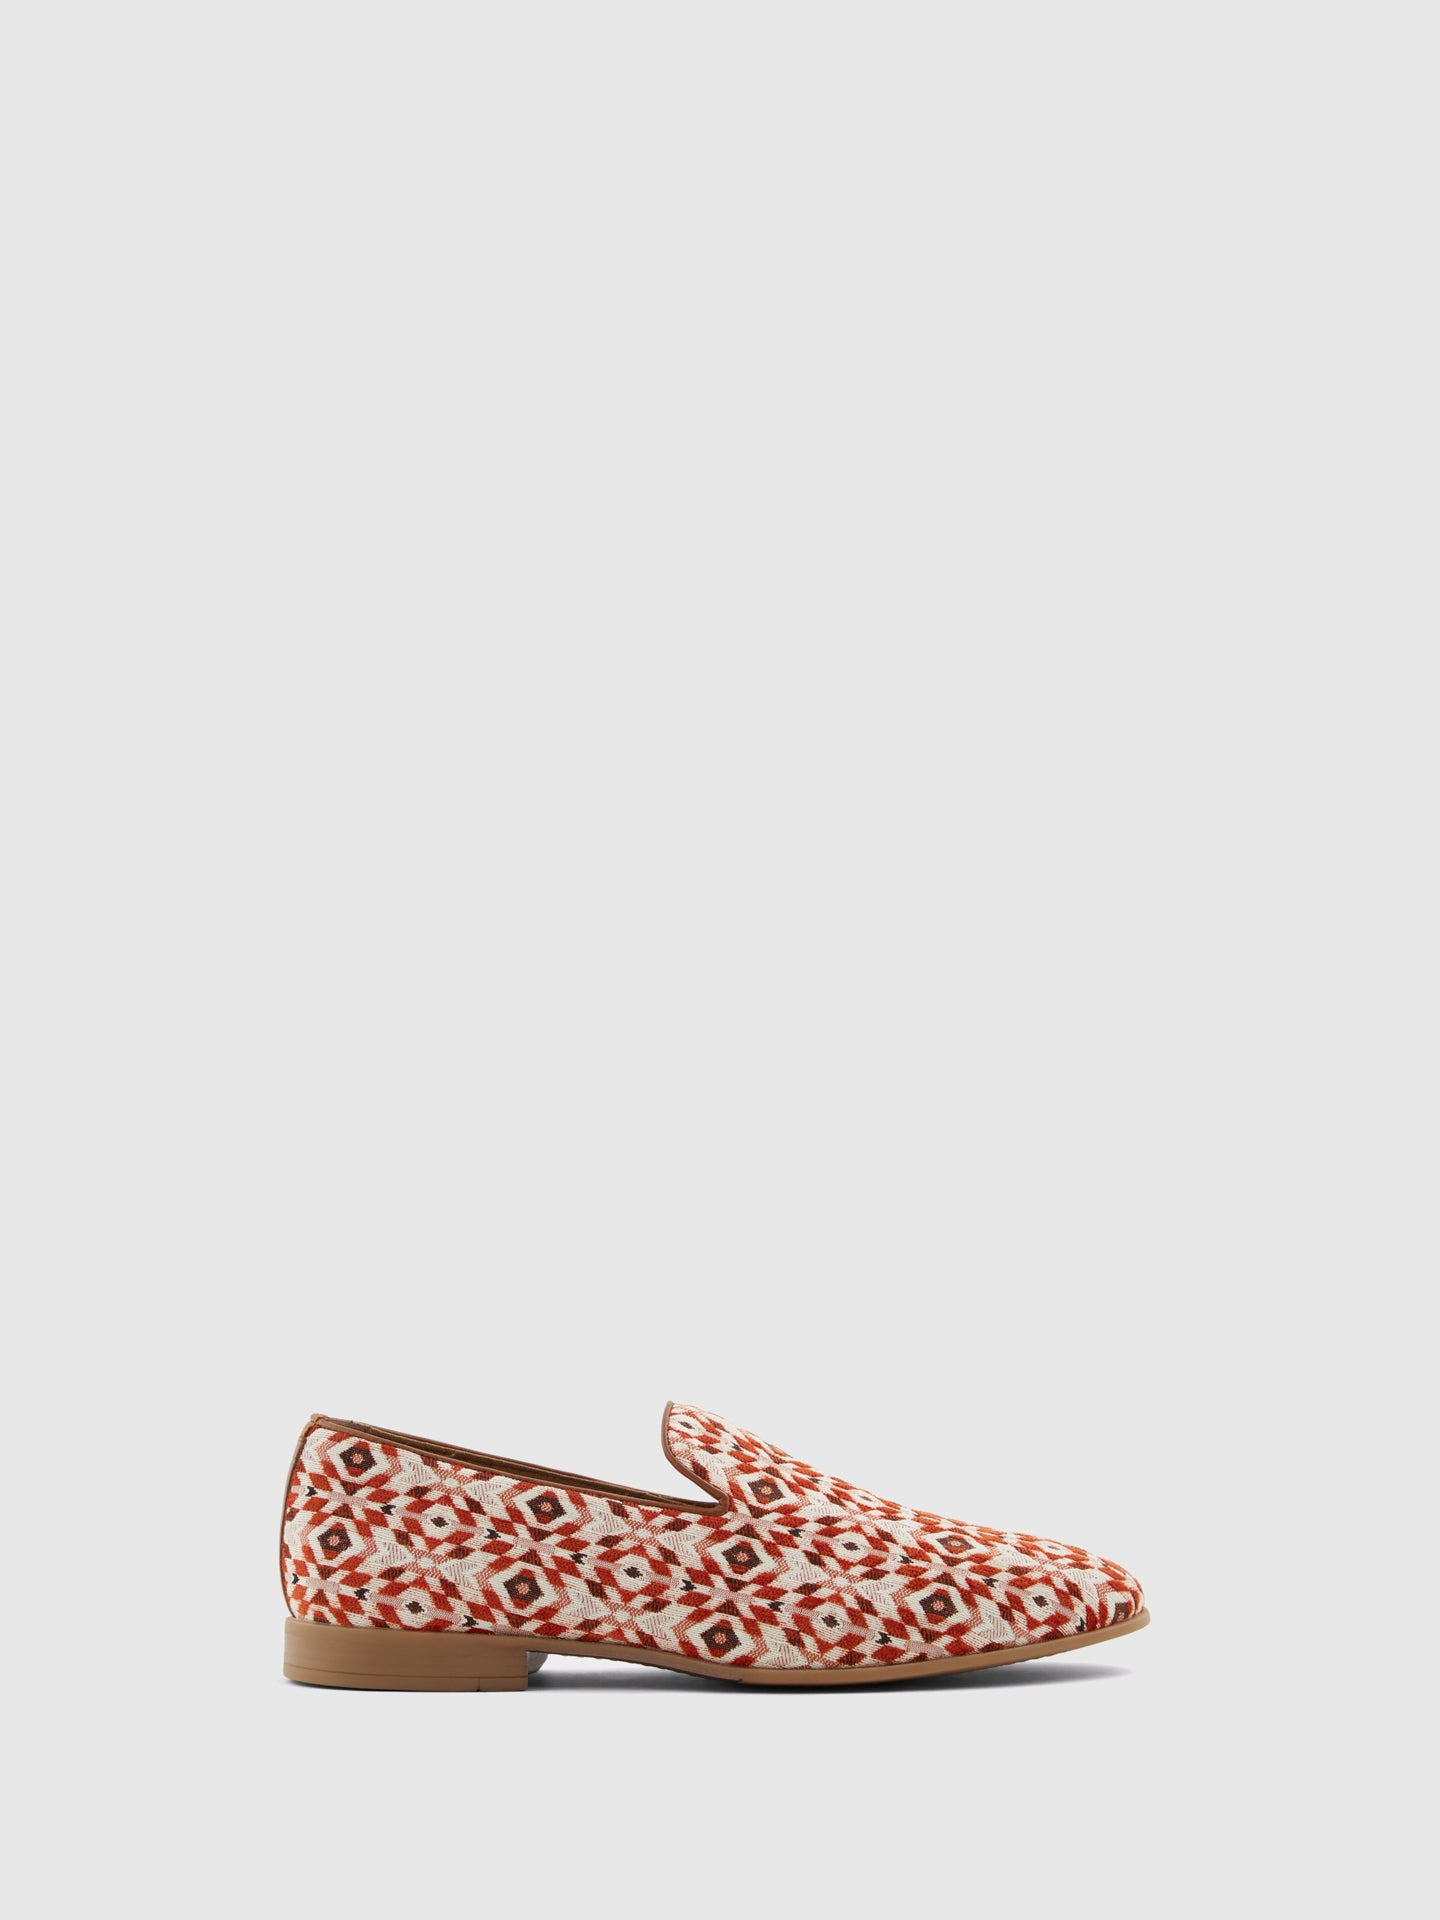 Aldo Red White Loafers Shoes